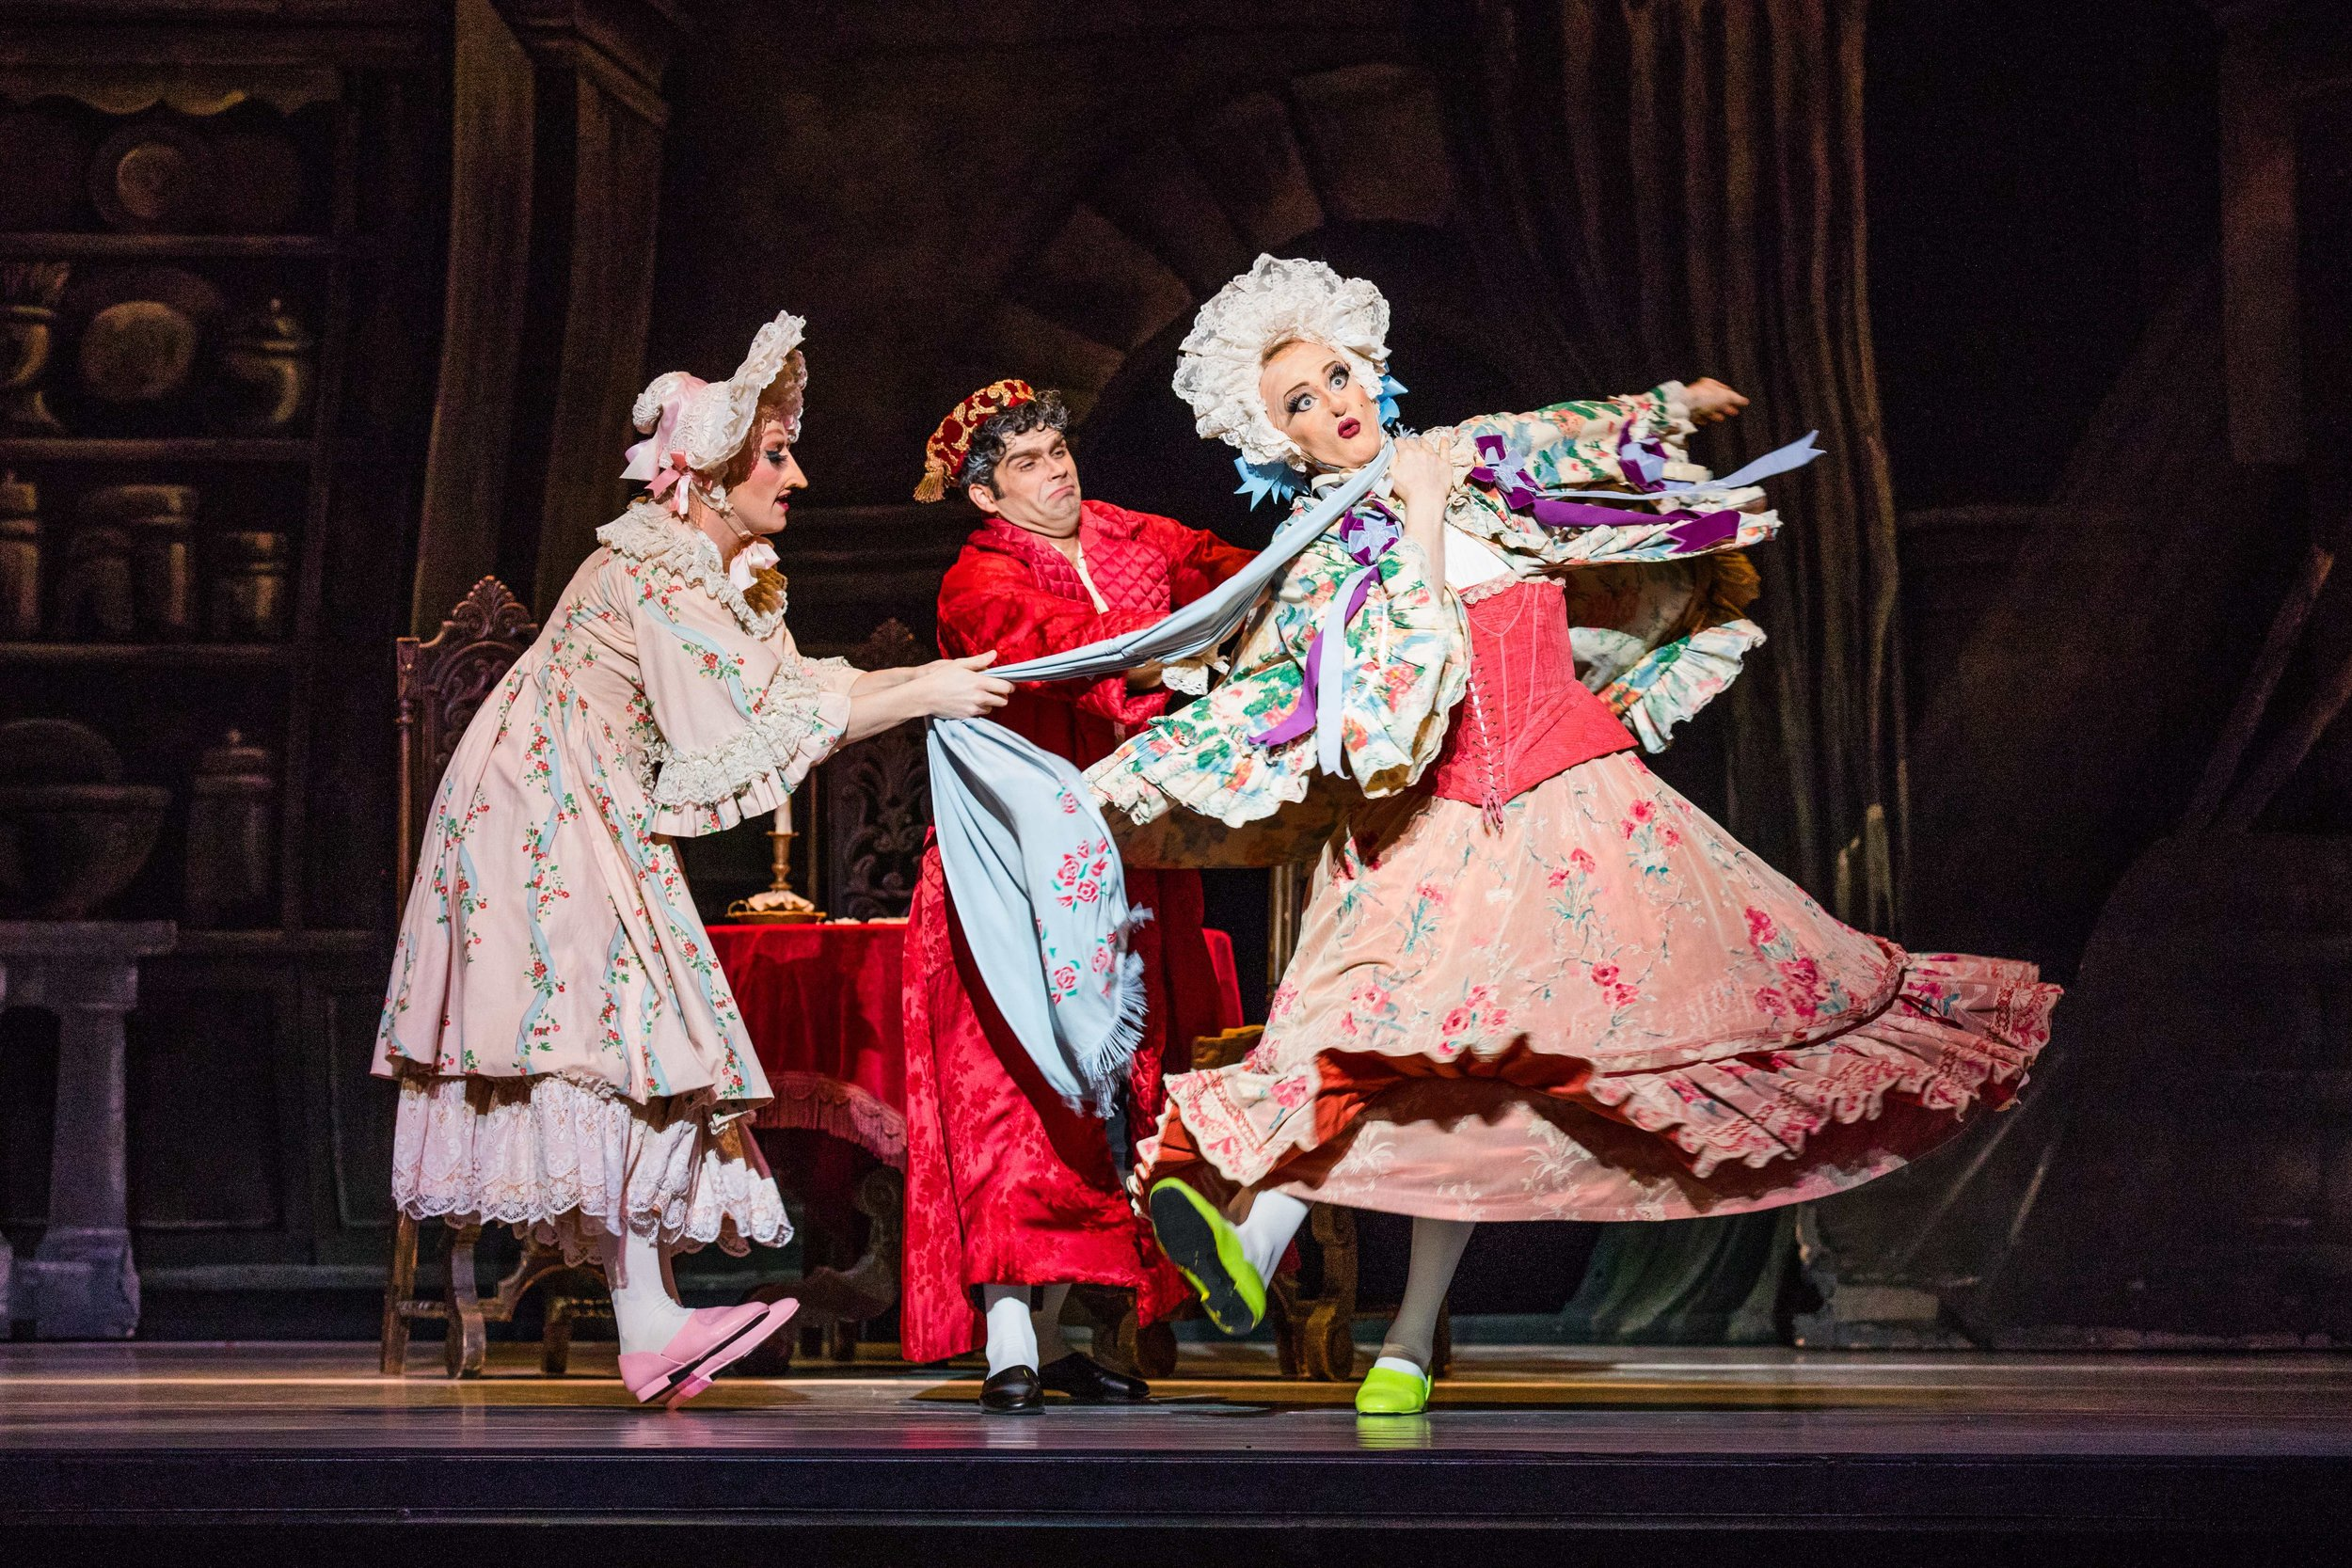 Artists of Ballet West as the Ugly Stepsisters. Photo by Beau Pearson.